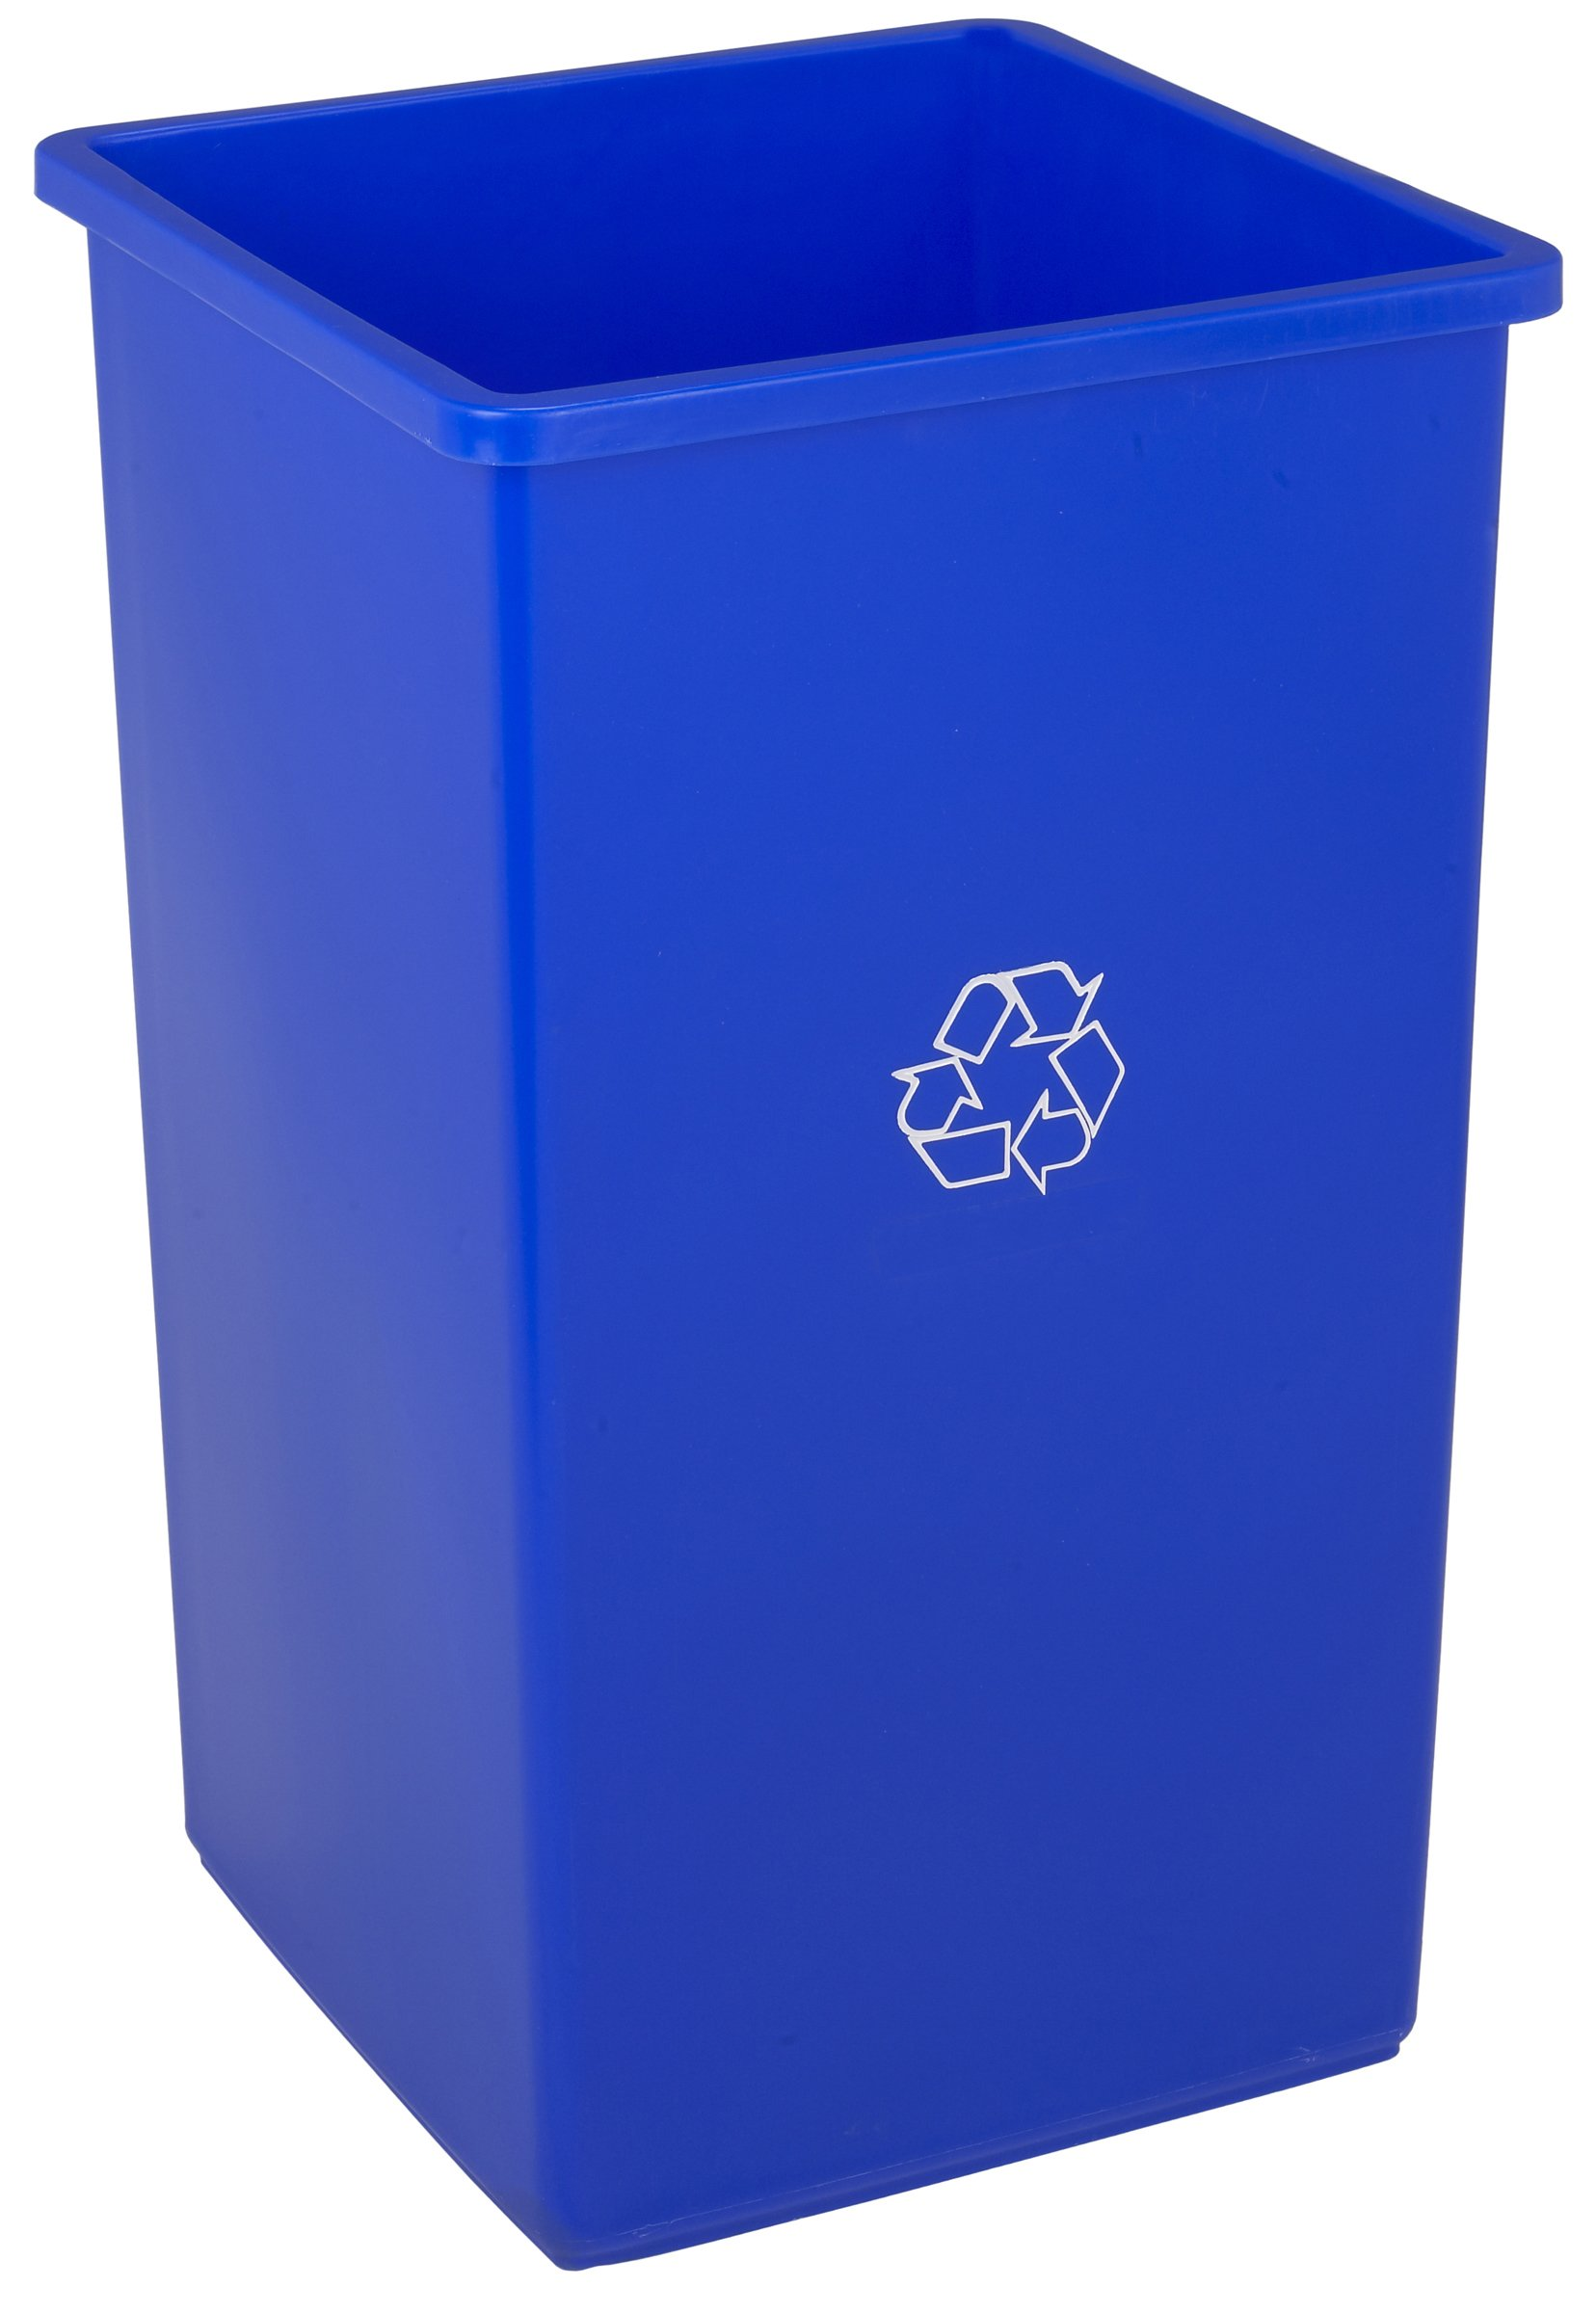 Continental 32-1 32-Gallon Swingline Receptacle with Recycle Imprint, Square, Blue